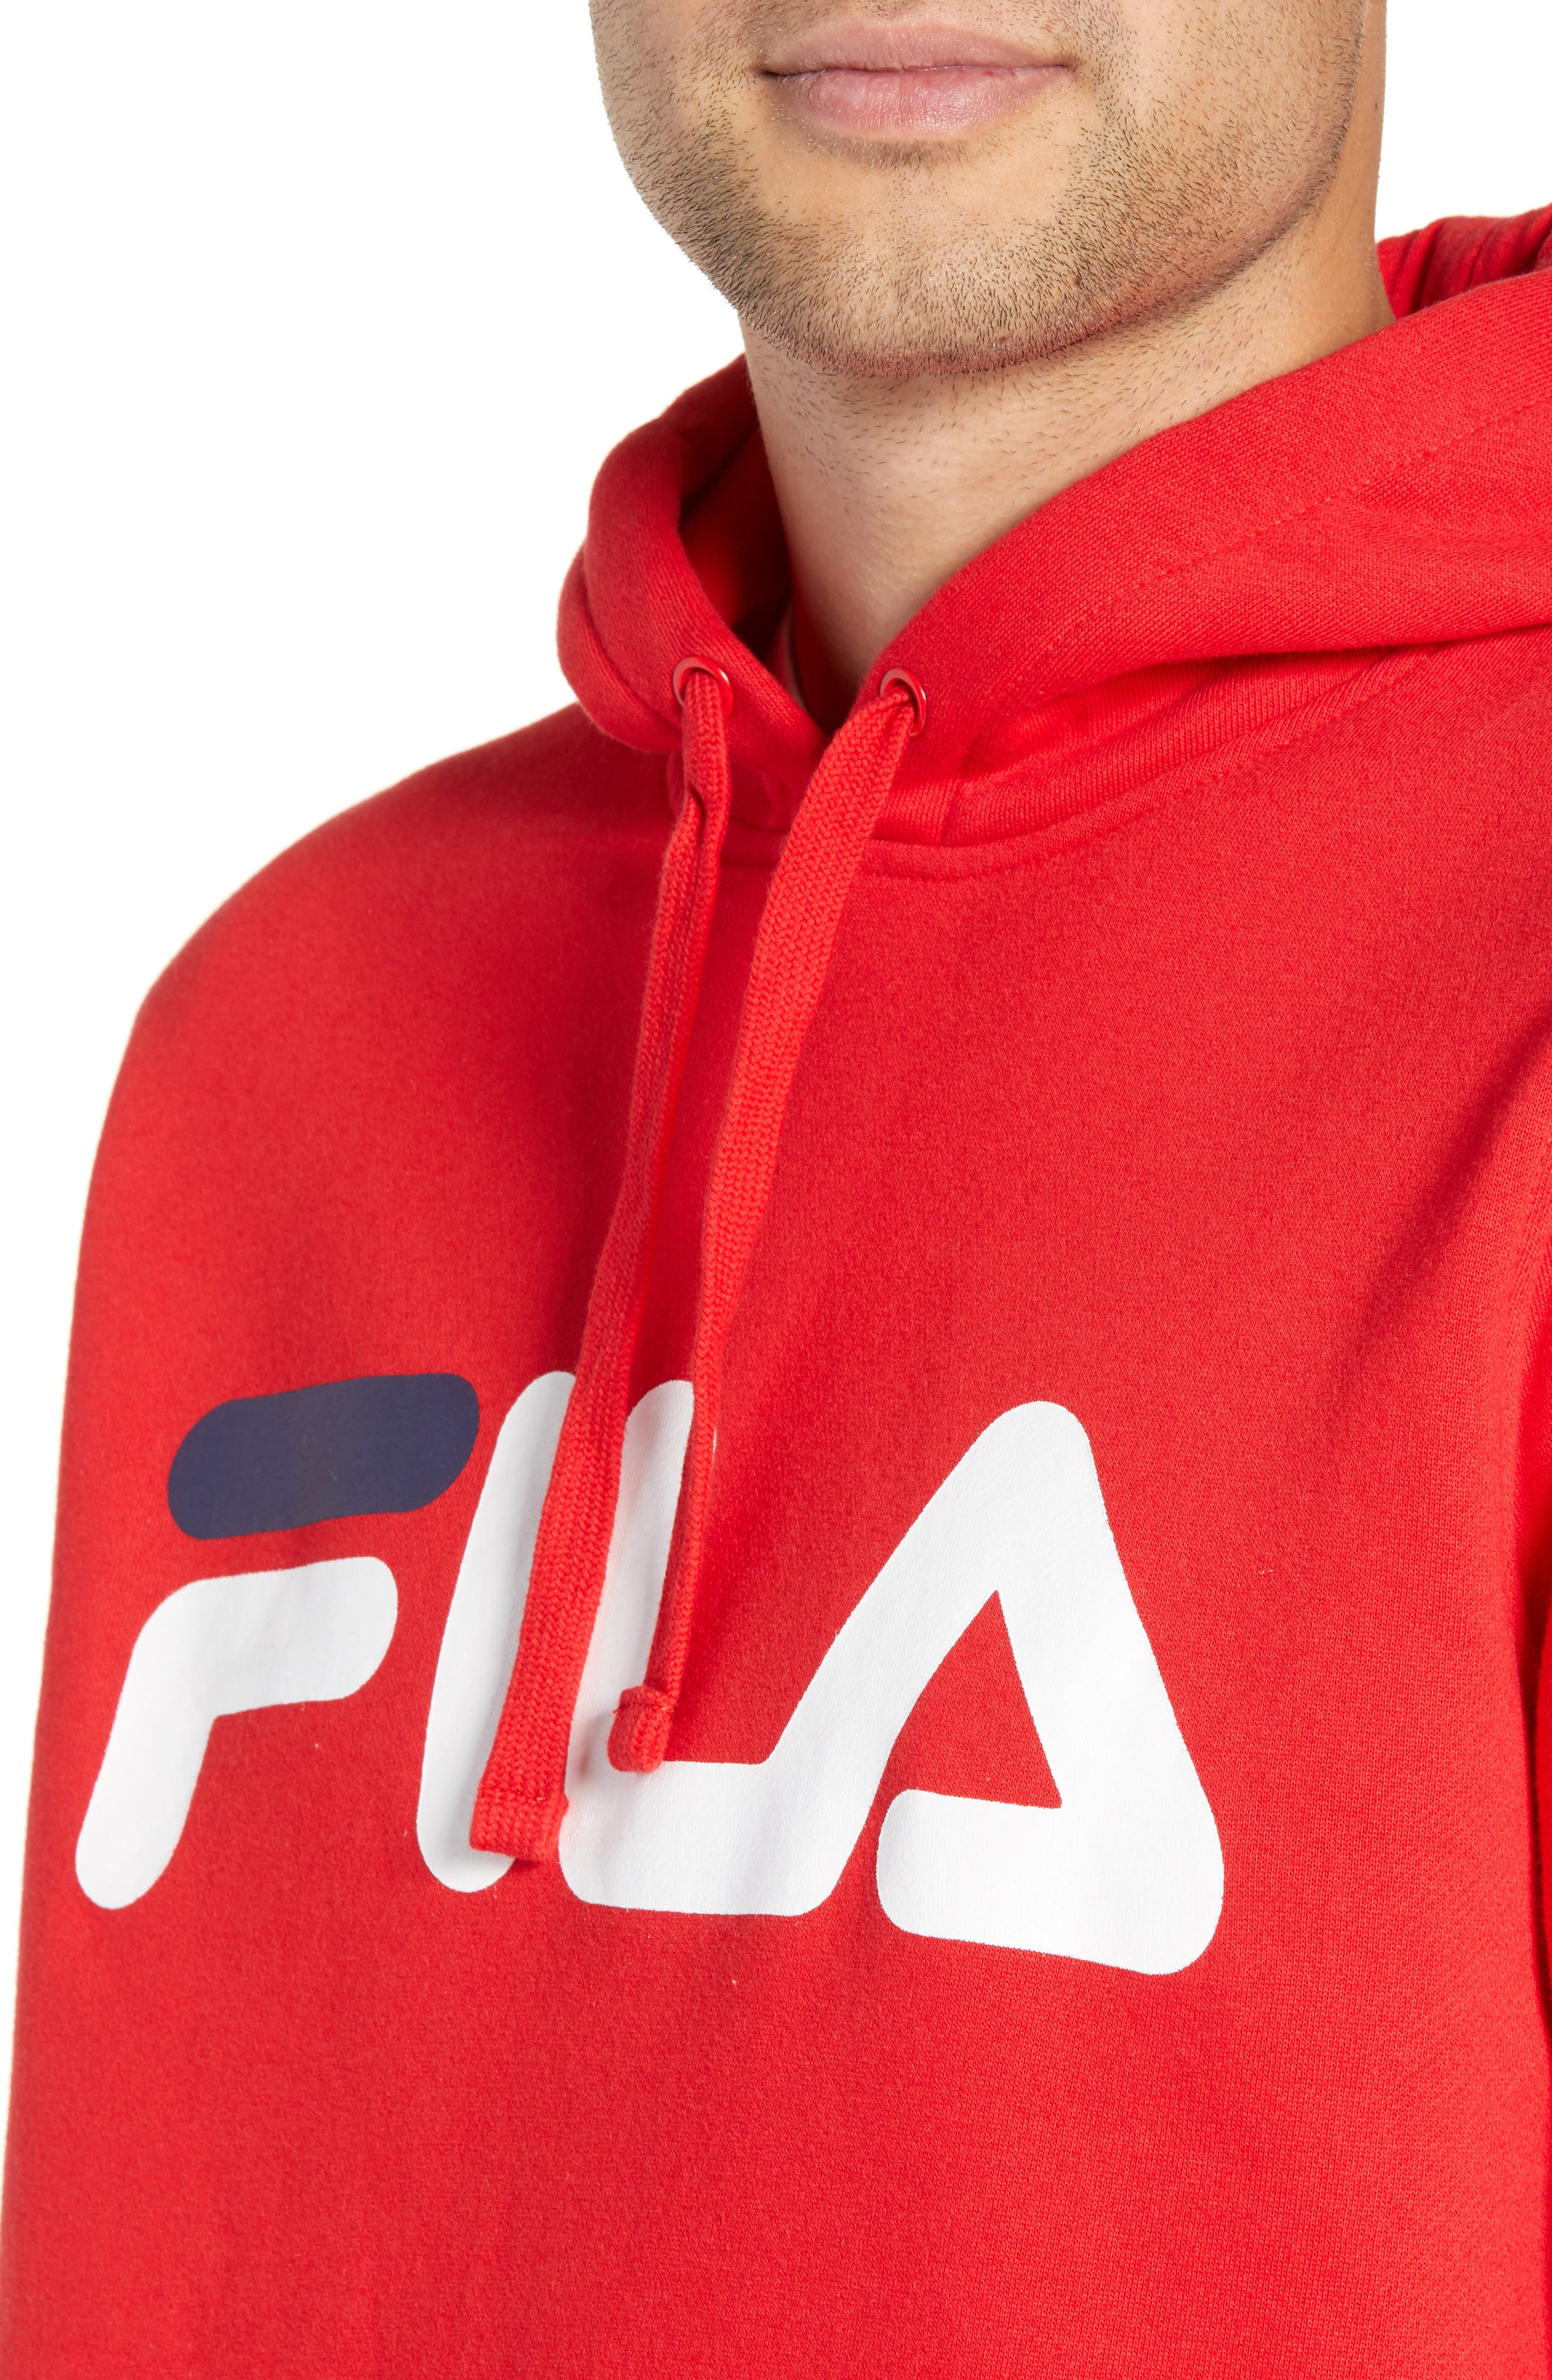 FILA, Logo Graphic Hooded Sweatshirt, Alternate thumbnail 4, color, CHINESE RED/ WHITE/ NAVY